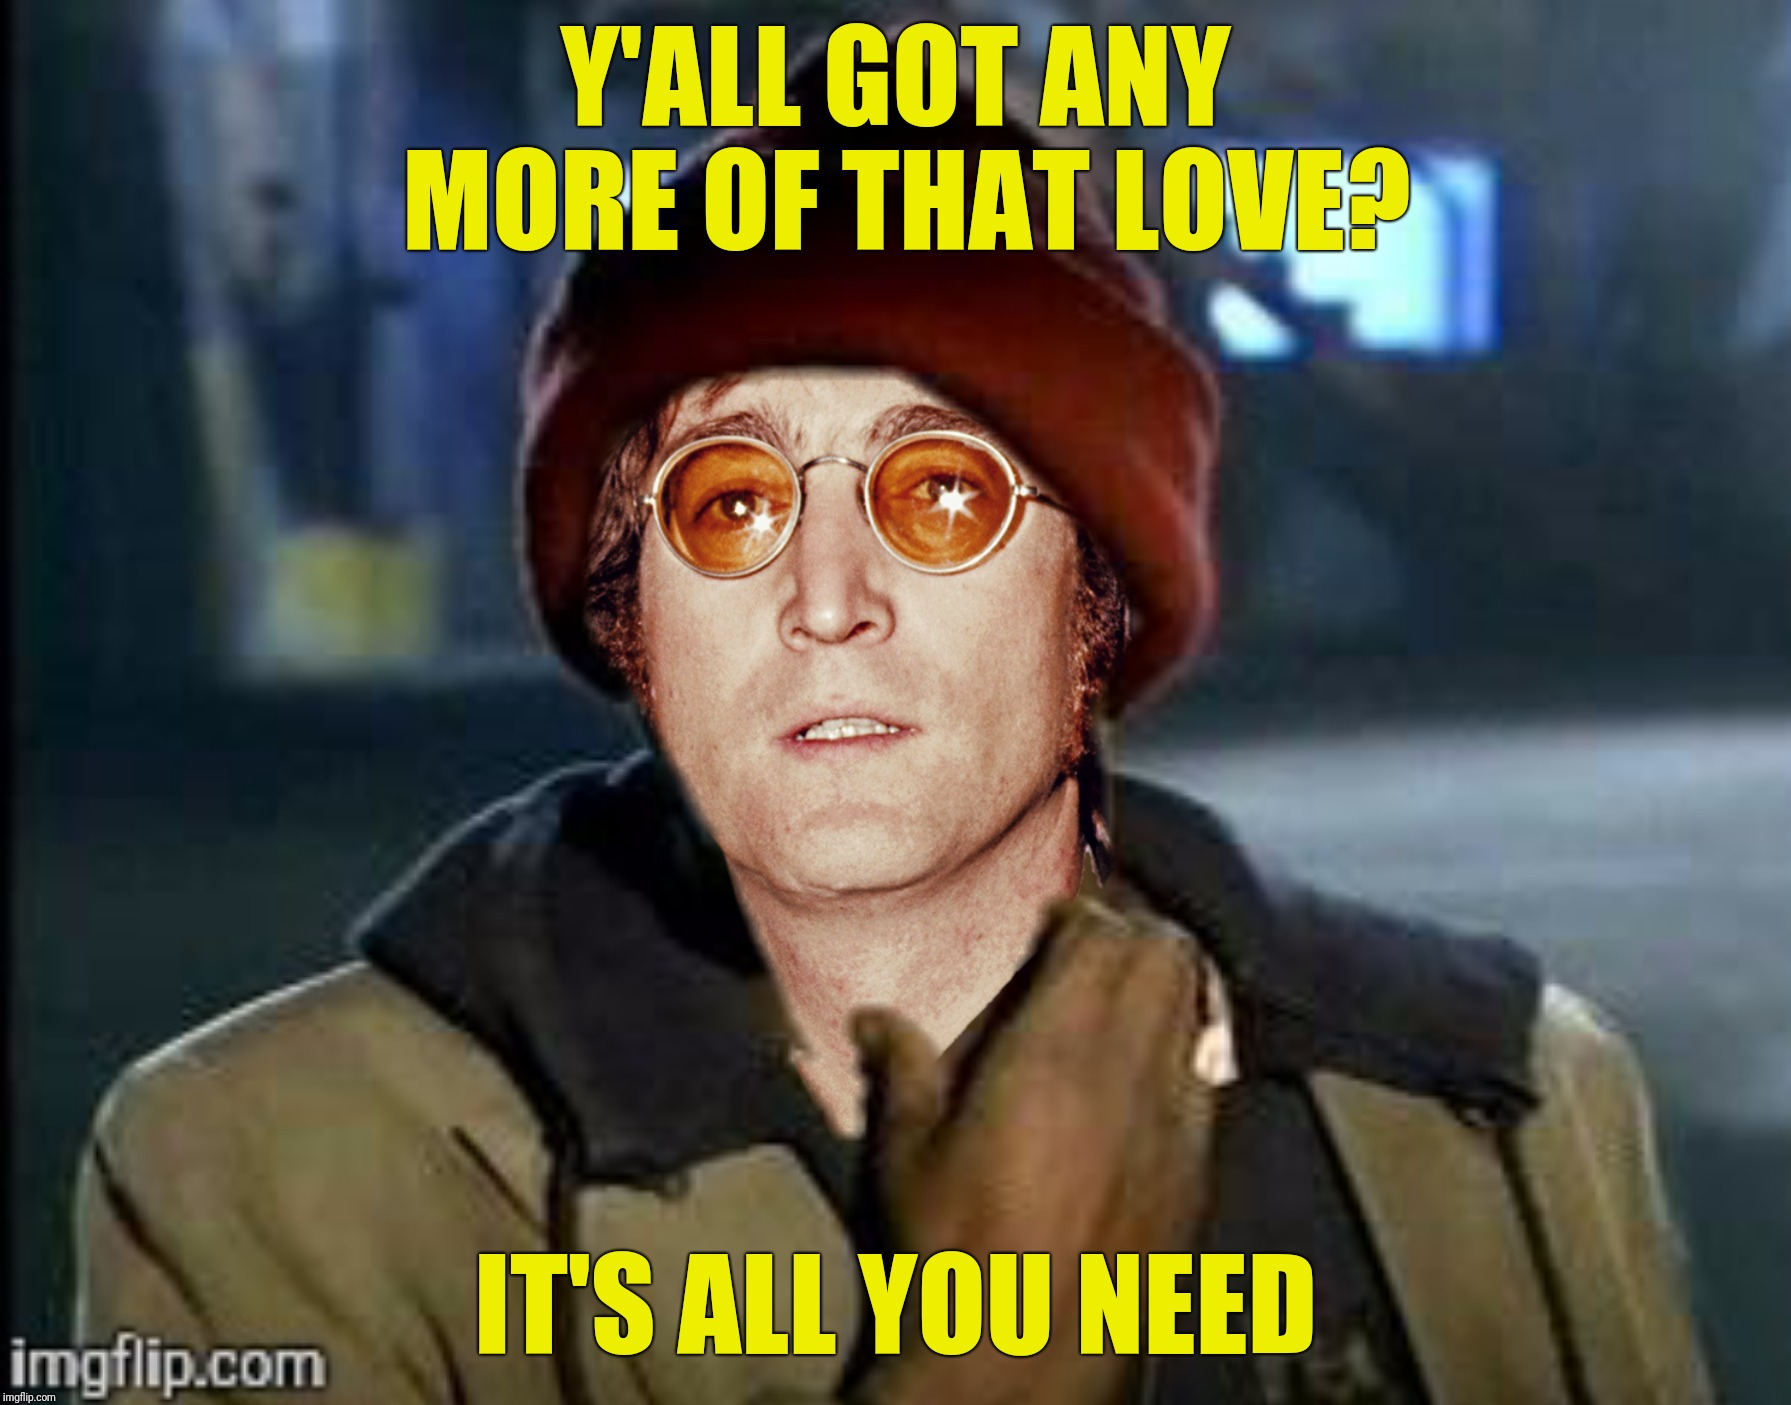 Bad Photoshop Sunday presents:  Y'all got any more of that money?  It's what I want.  Submission suggested by DashHopes | Y'ALL GOT ANY MORE OF THAT LOVE? IT'S ALL YOU NEED | image tagged in bad photoshop sunday,john lennon,y'all got any more of that,all you need is love | made w/ Imgflip meme maker